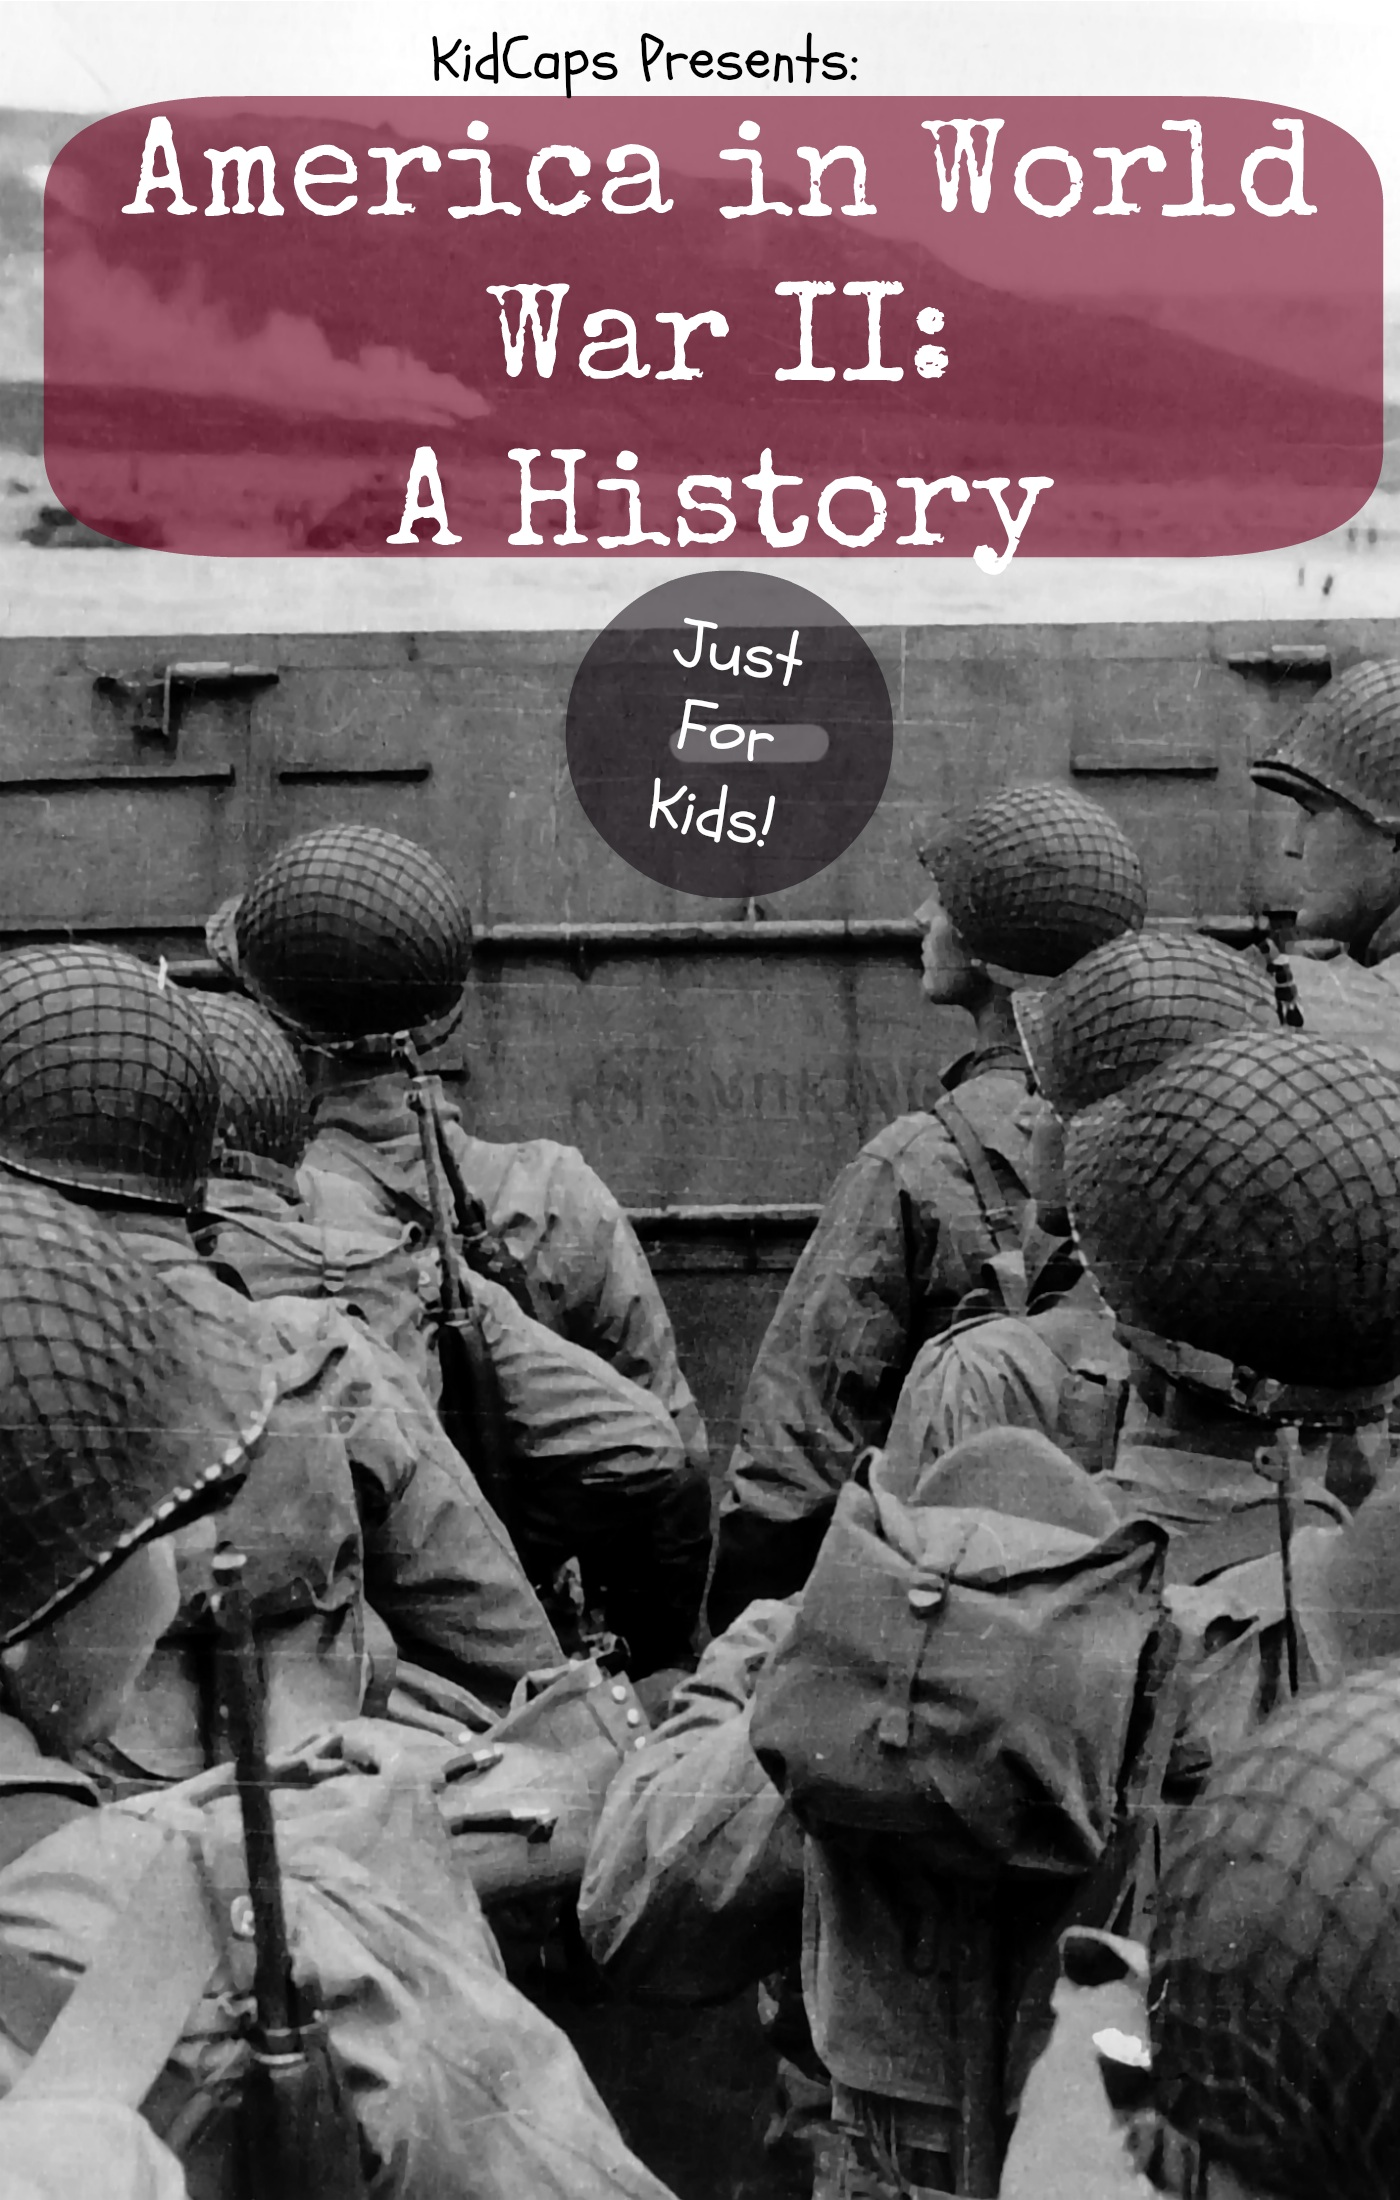 the best war ever summary The best war ever: america and world war ii is a revisionist history book written by dr michael c c adams (professor of history at northern kentucky university) the book was and first published by the johns hopkins university press in 1993 as part of its american moment series.